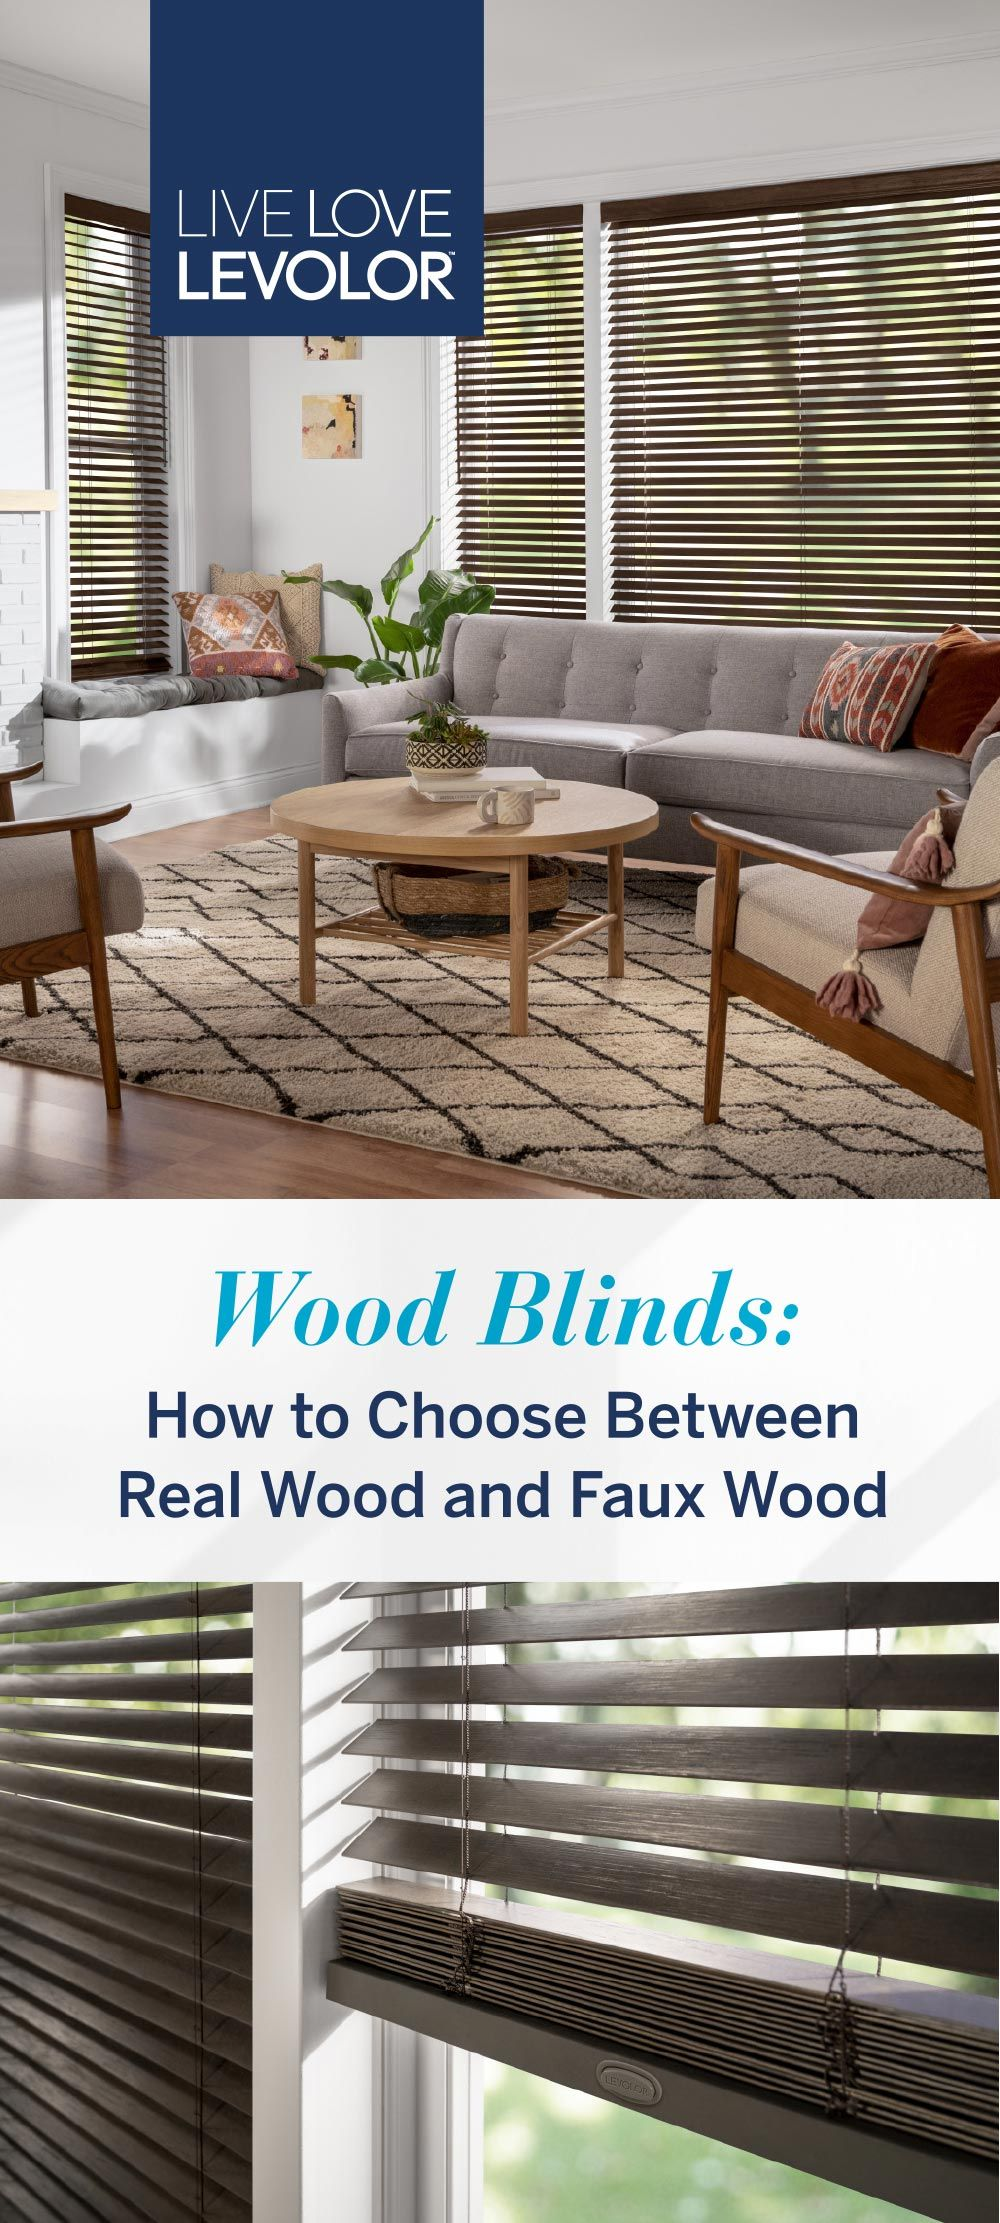 What S The Difference Between Levolor Real Wood And Faux